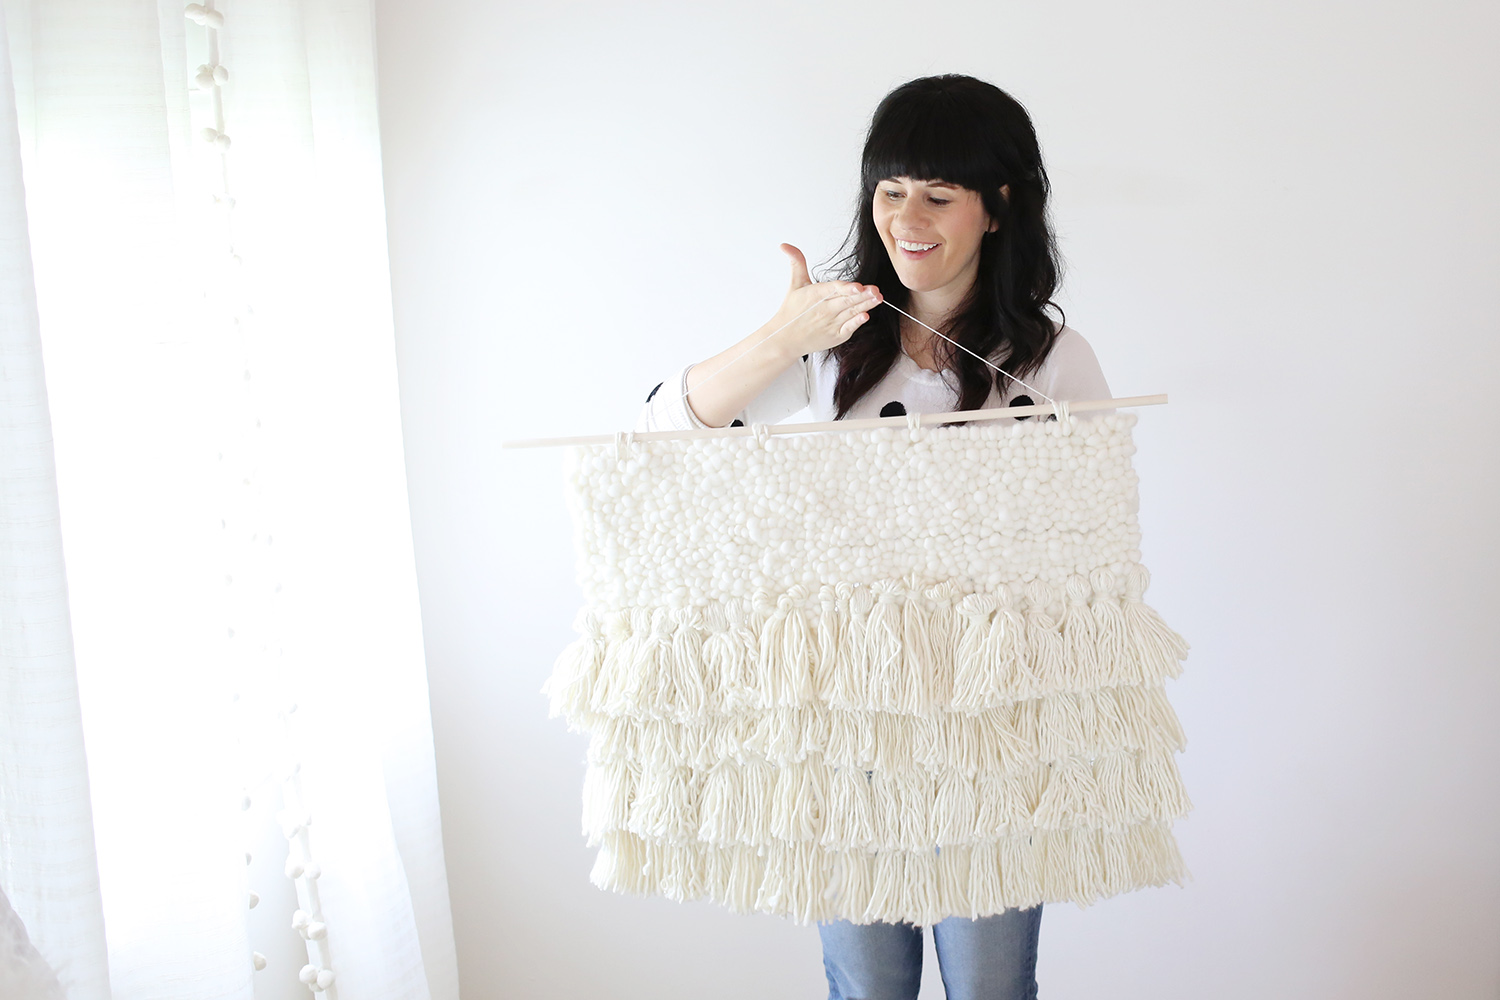 Step 4 pose with your fiber art in the dorkiest way possible